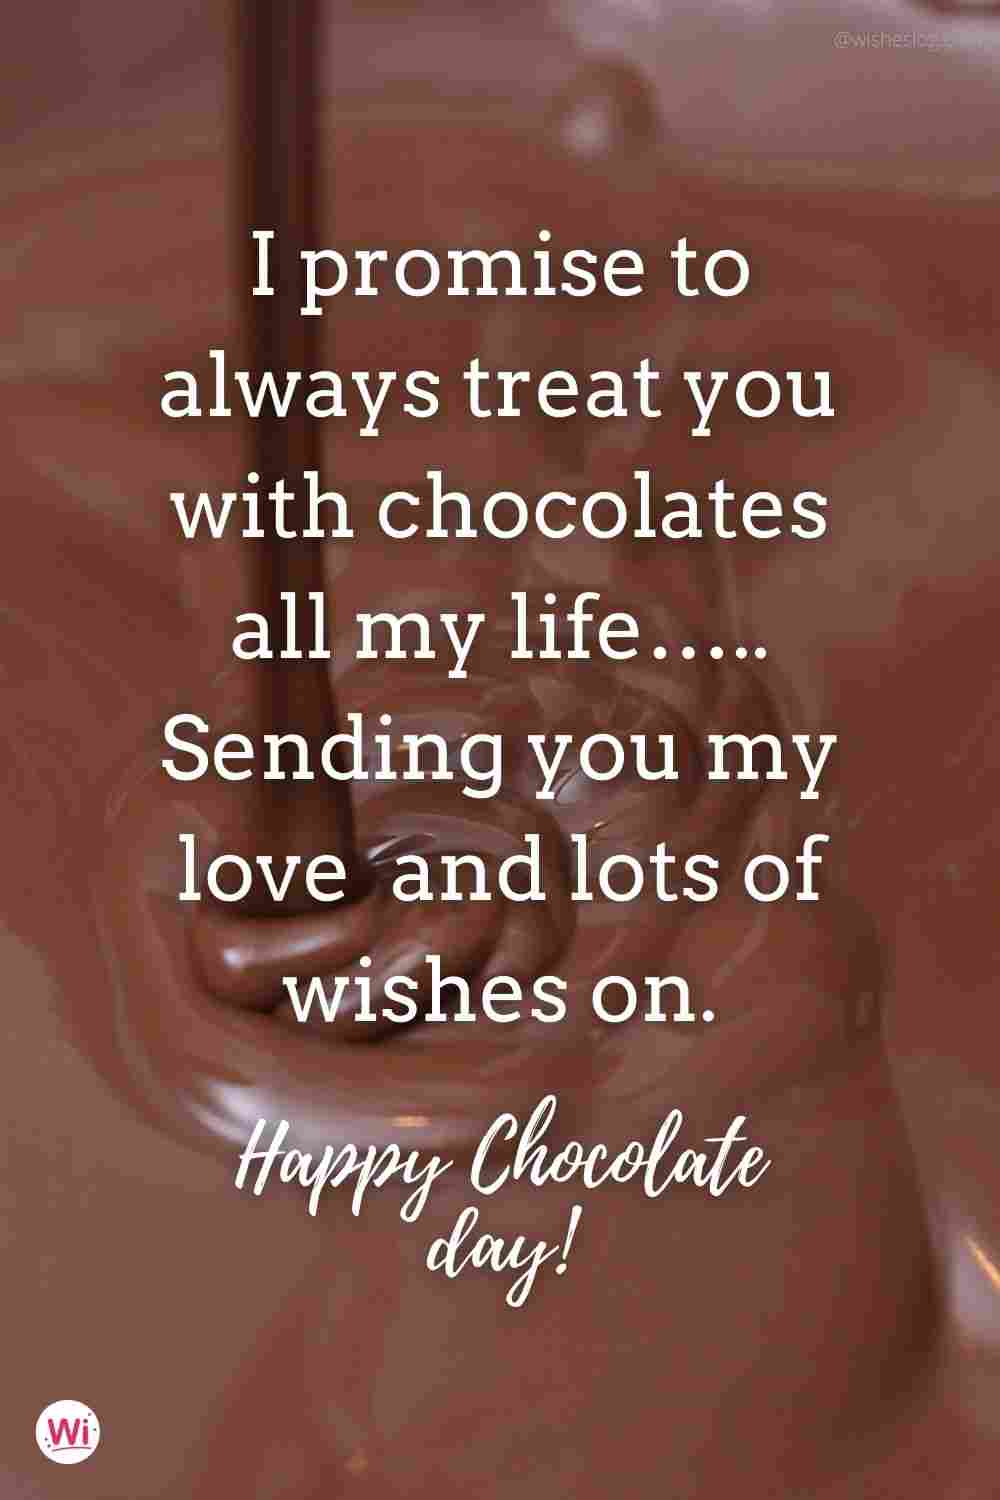 happy chocolate day wishes for girlfriend